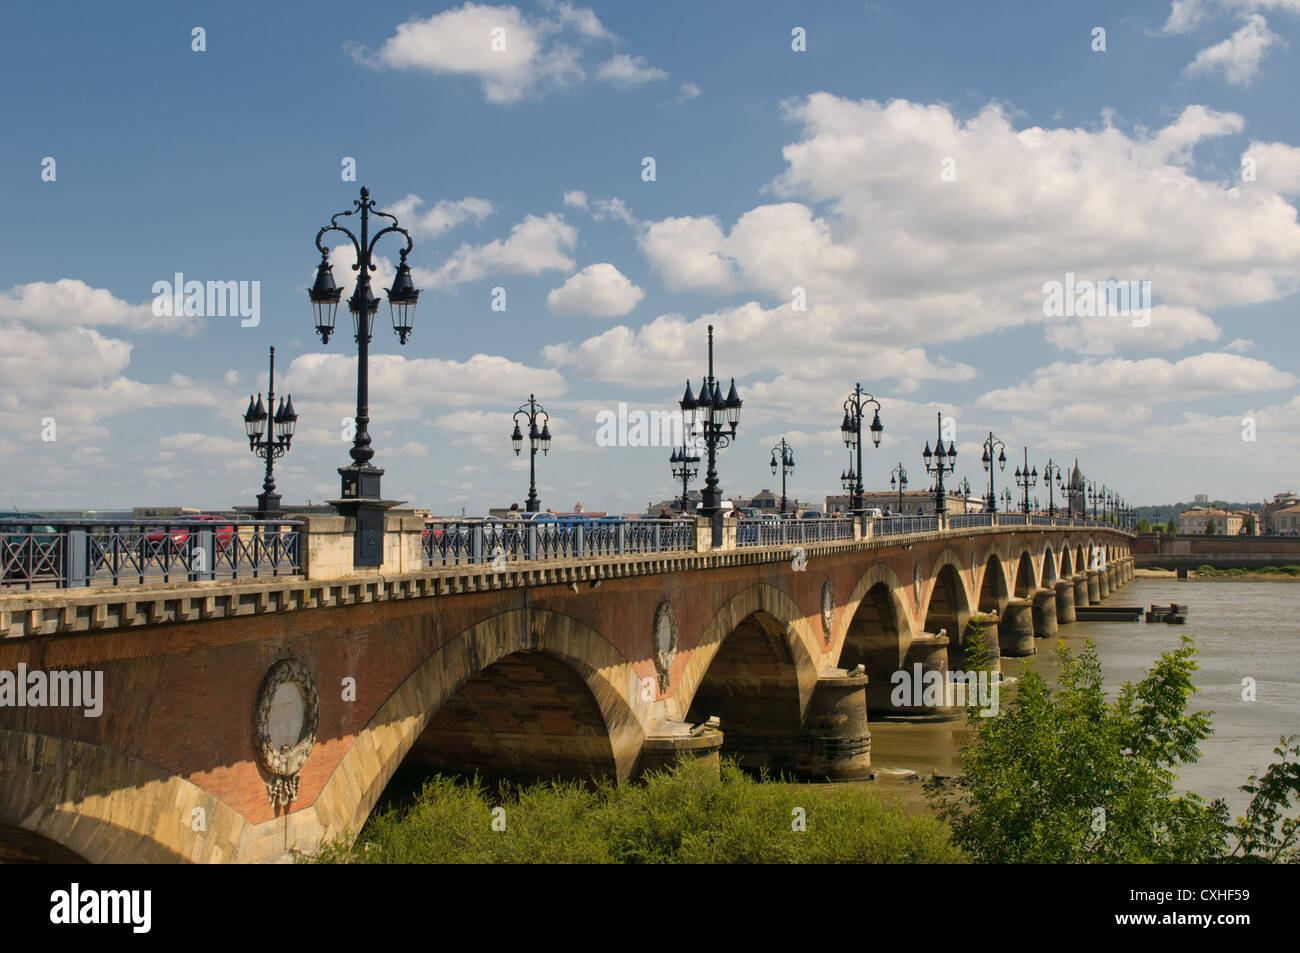 Pont de pierre, Bordeaux, France - Stock Image